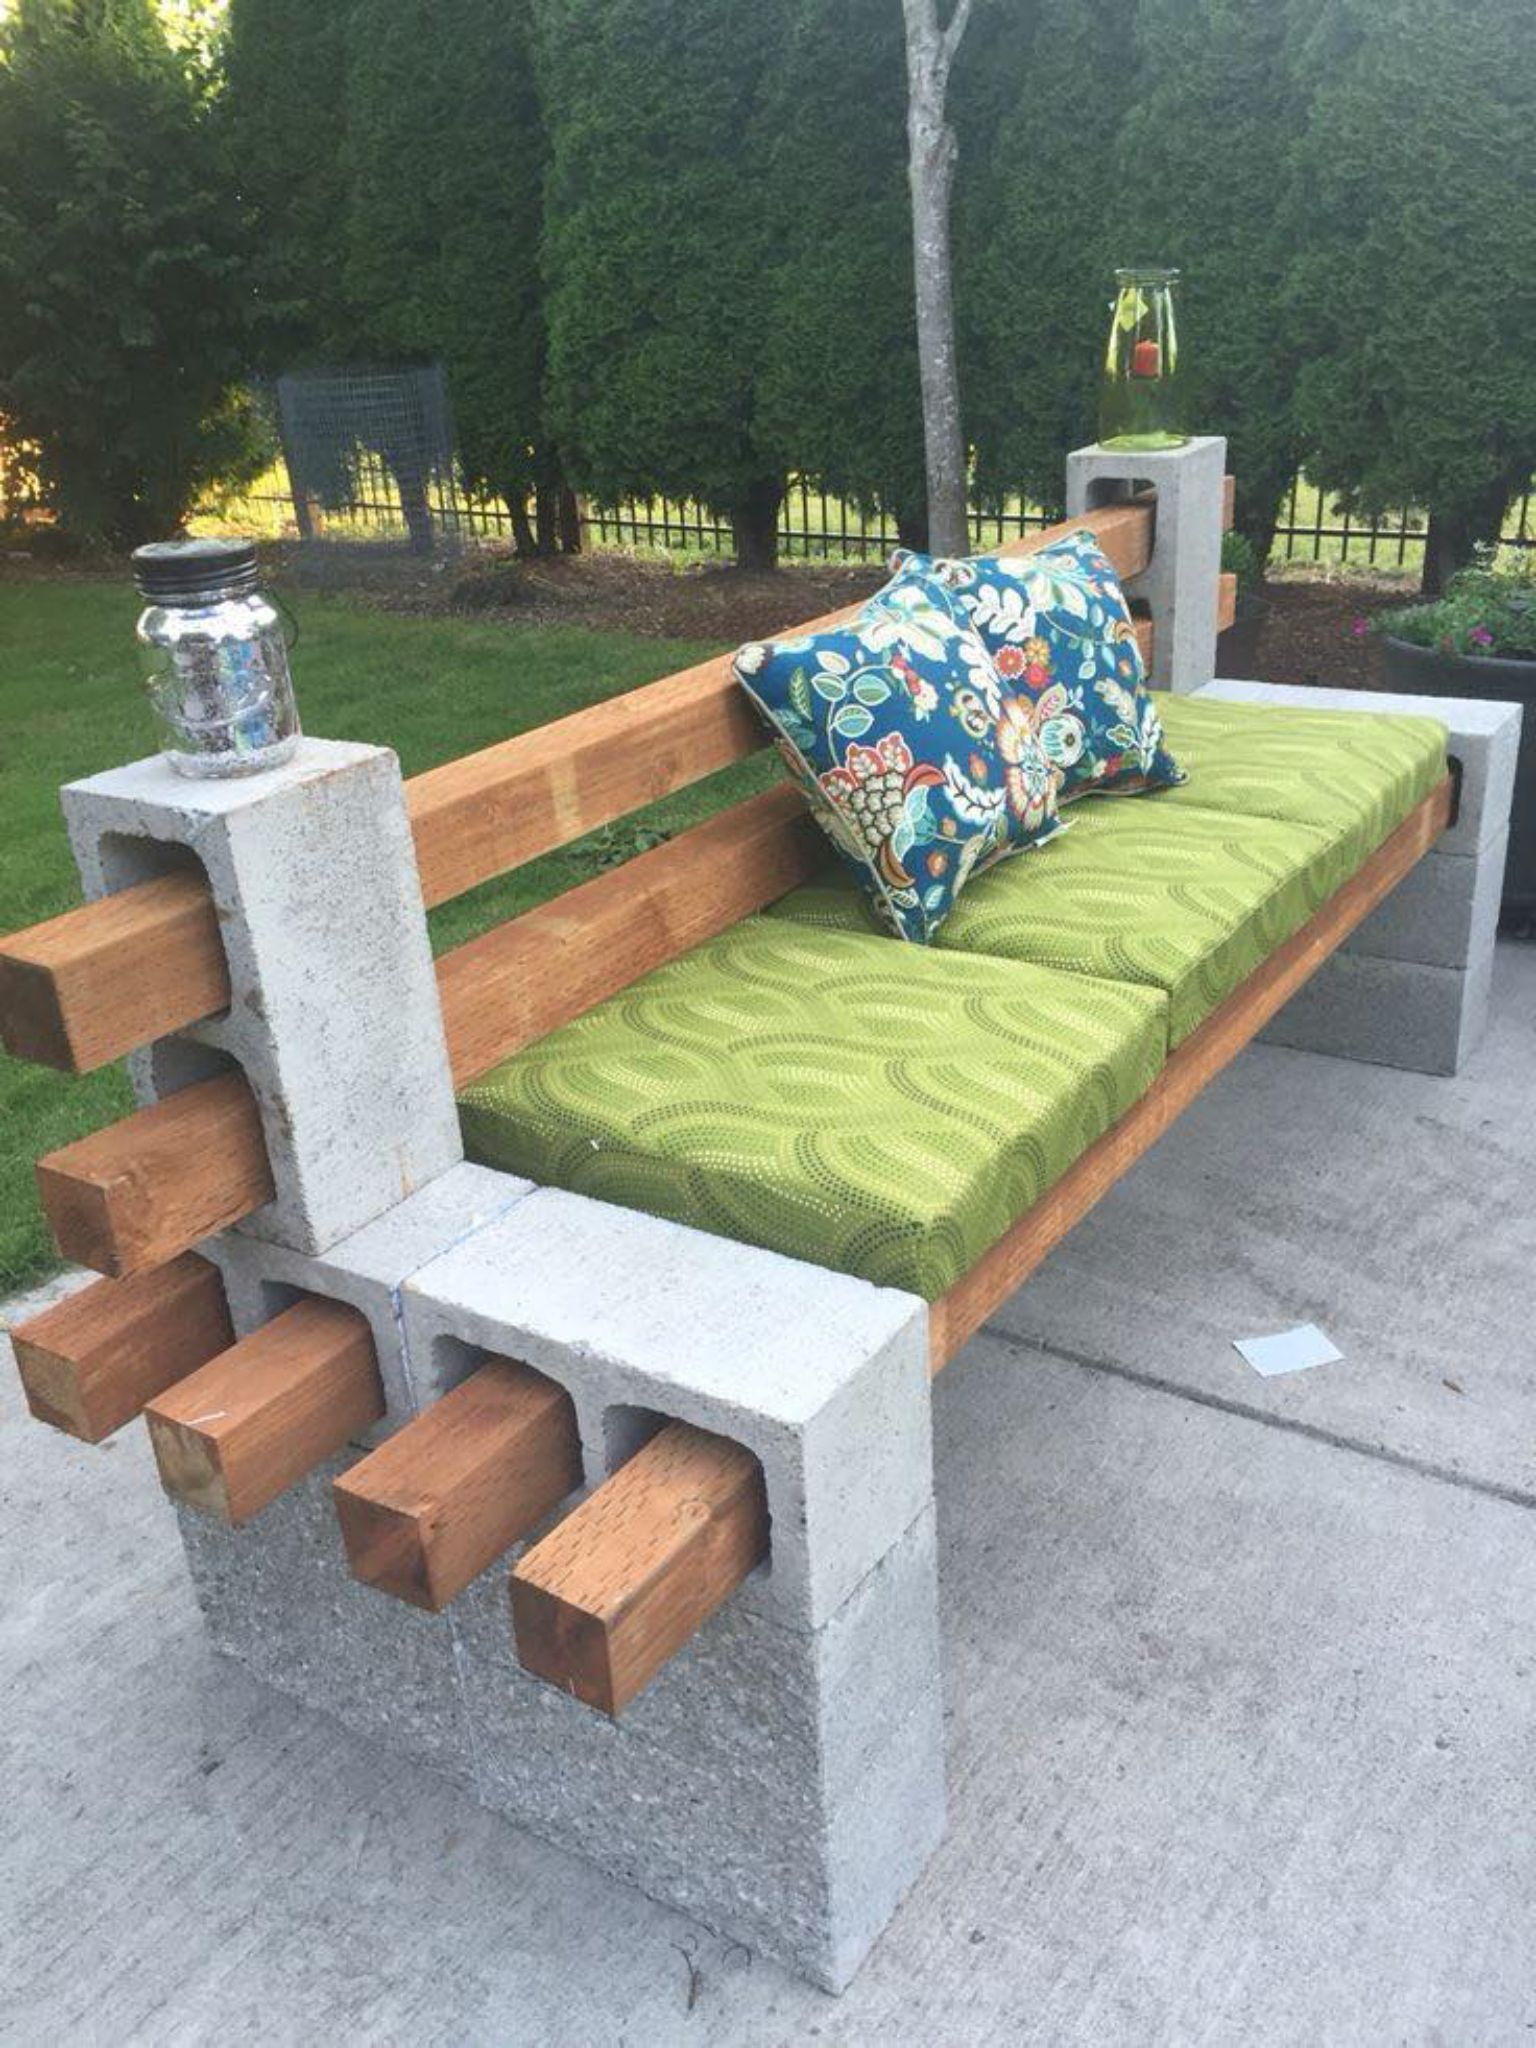 13 DIY Patio Furniture Ideas that Are Simple and Cheap - Page 2 of ...